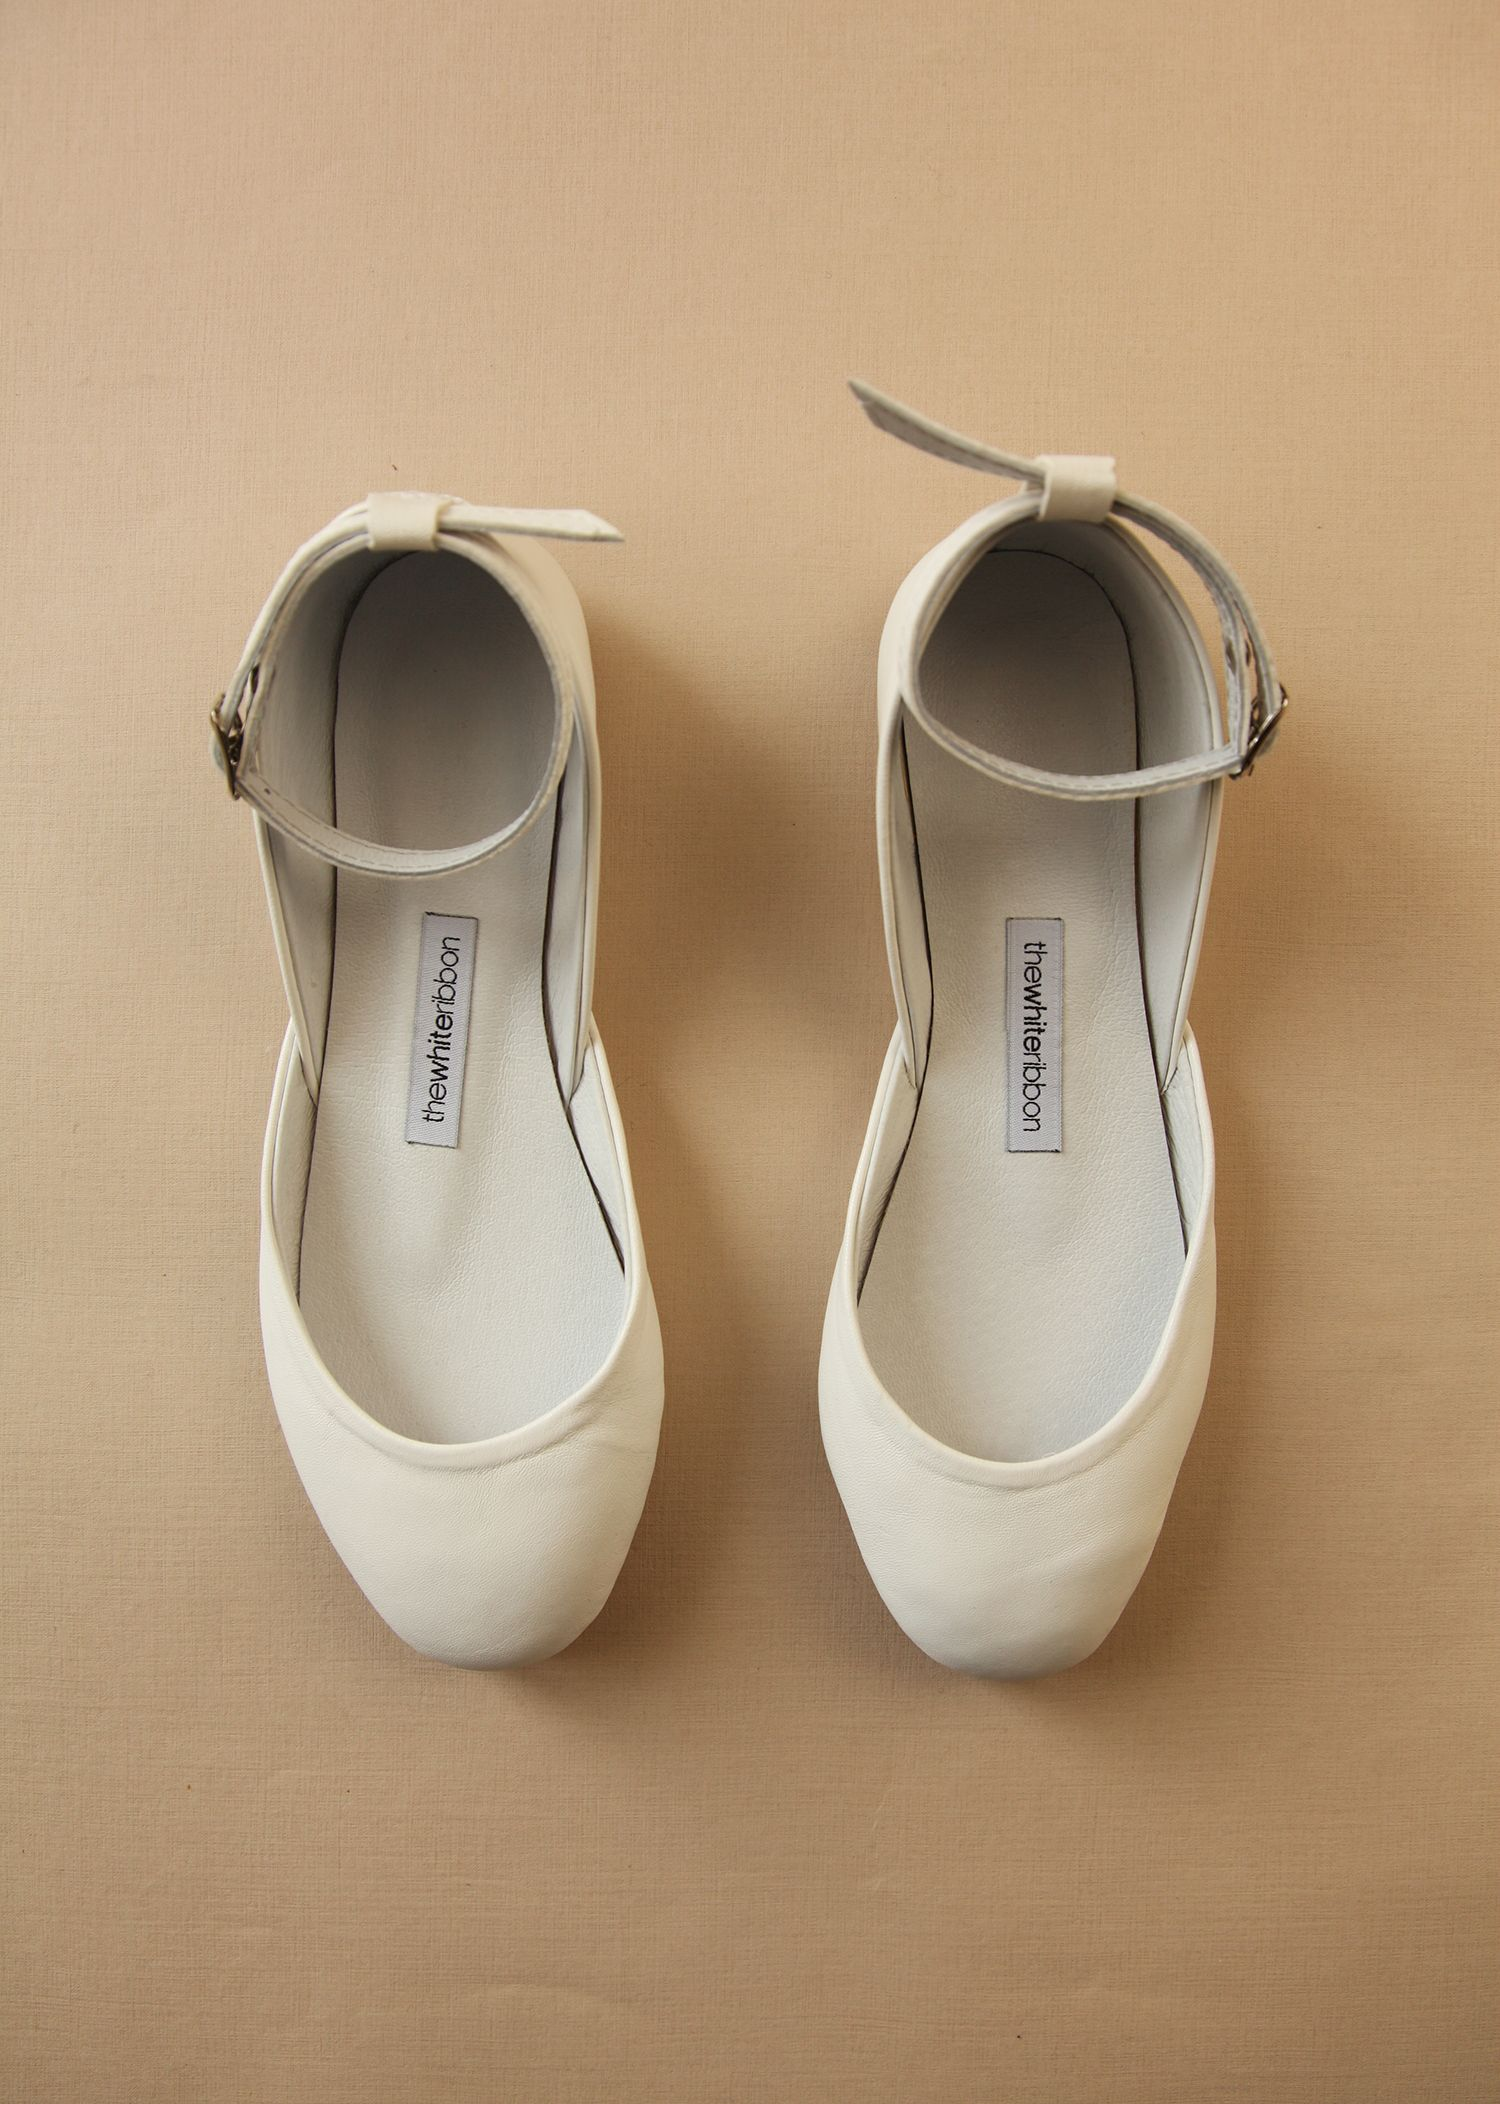 736ebd5eb4c Creamy White Mary Jane Leather Ballet Flats. Perfect for your ...